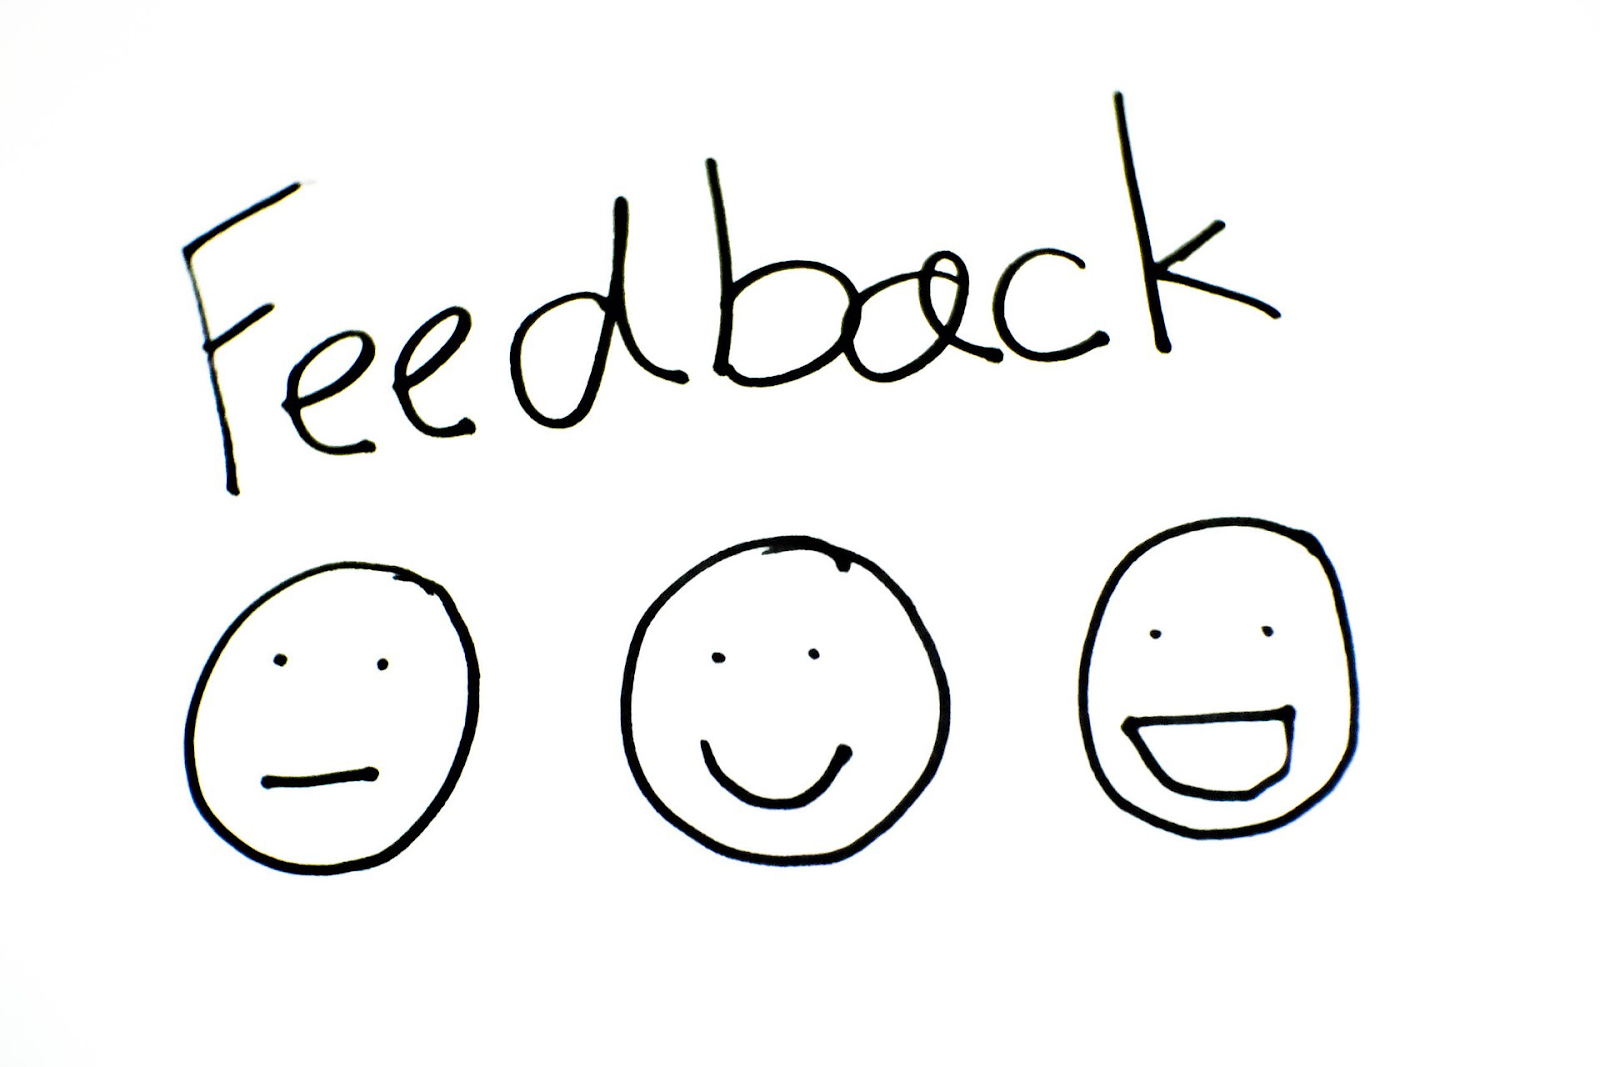 Employees feel valued if their insights and feedback regarding company culture is taken into consideration